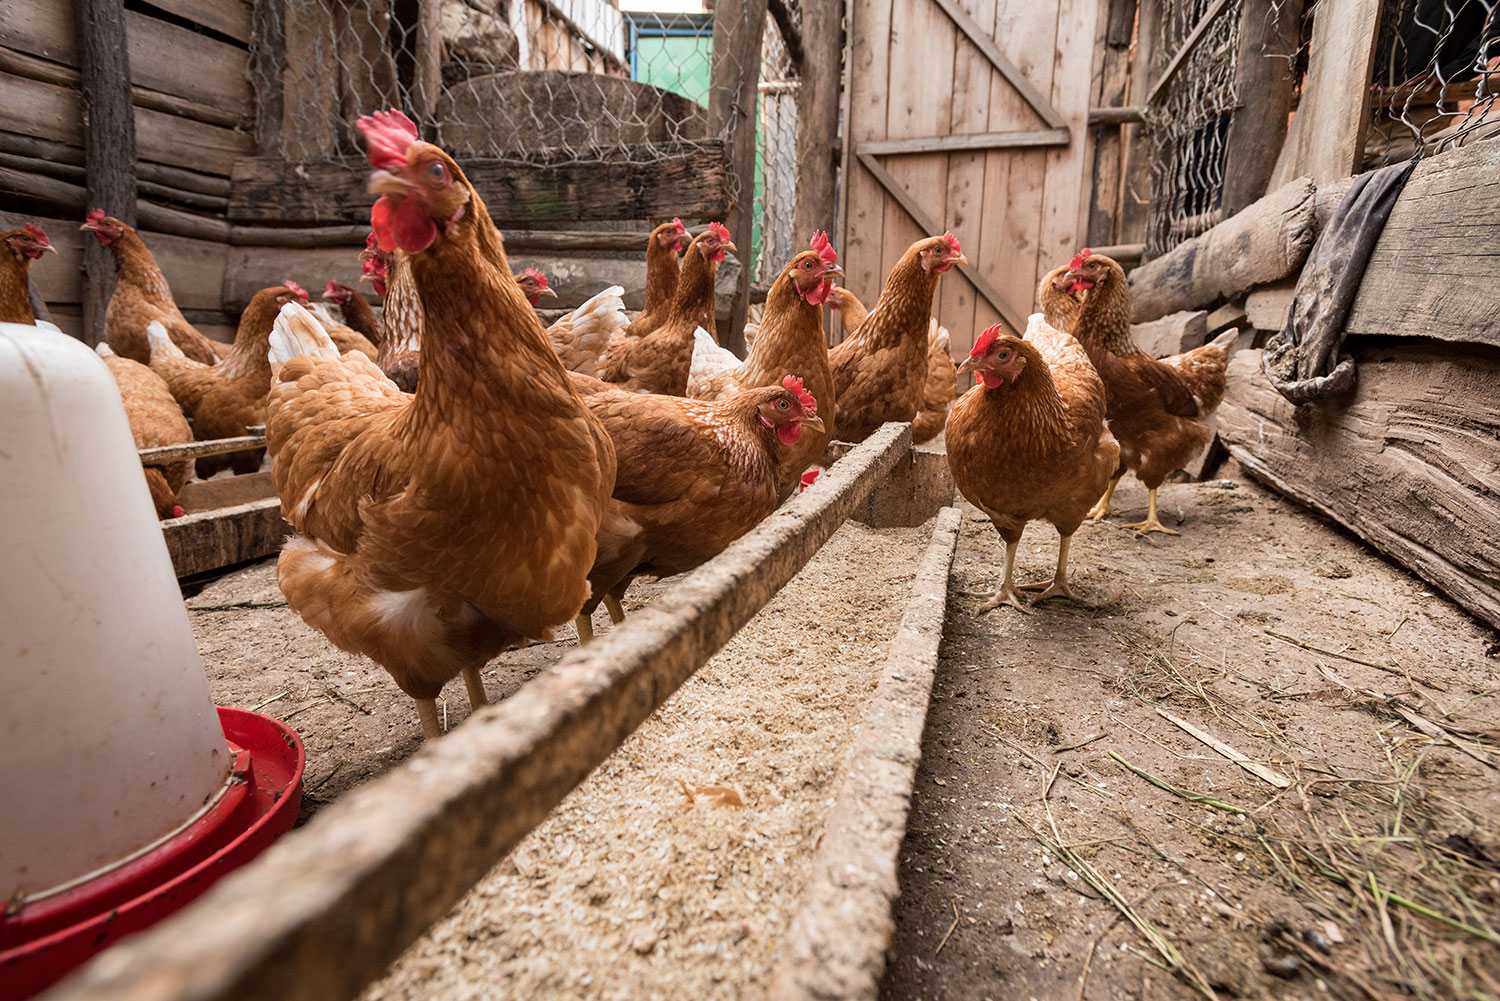 Phocus' chickens at his farm in Rwanda